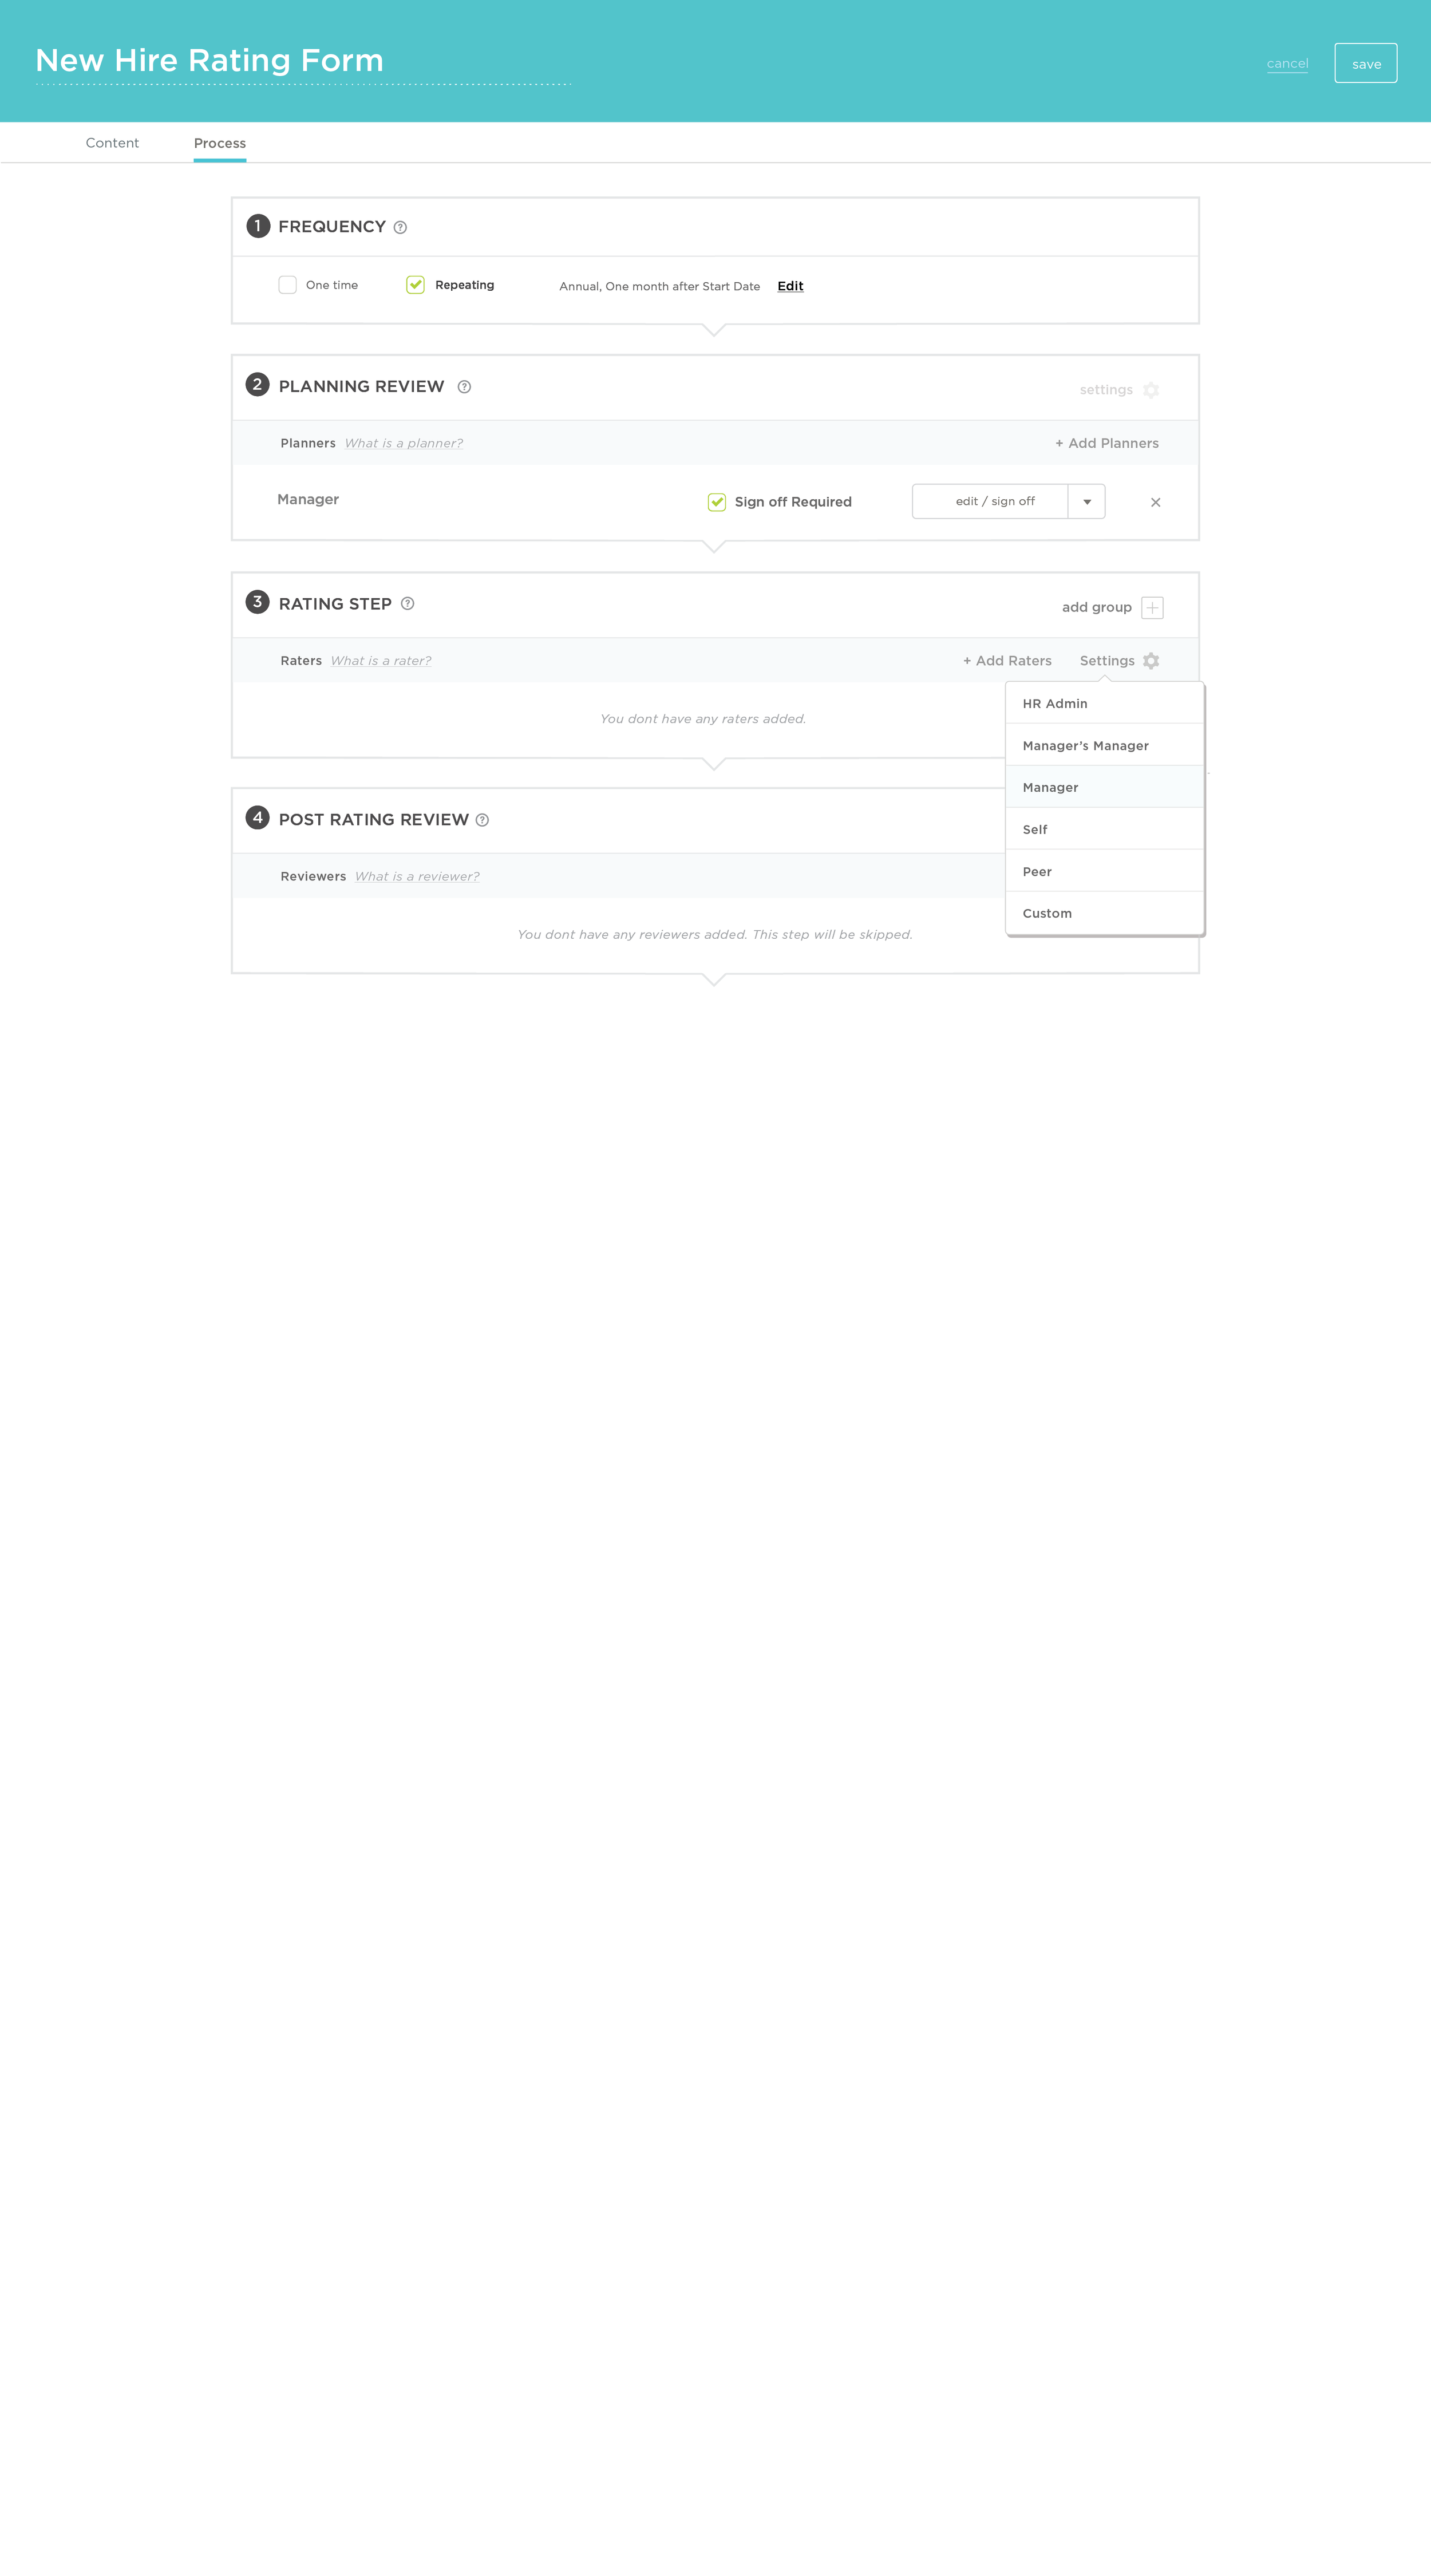 Invision_Pe_rating-form-process_03_8.png